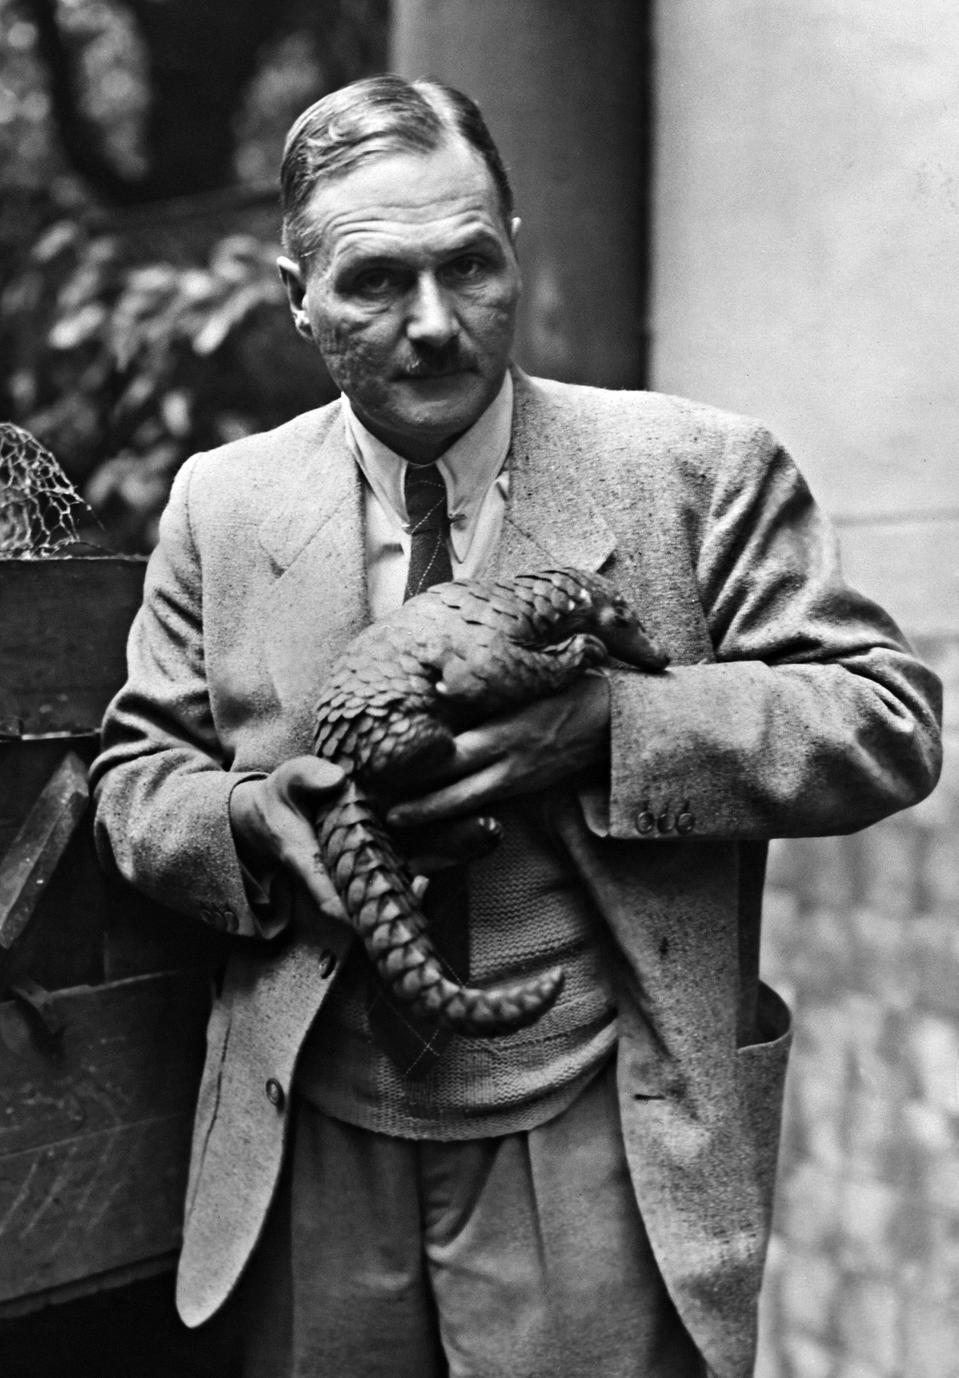 Lutz Heck with a scaly anteater, 1940